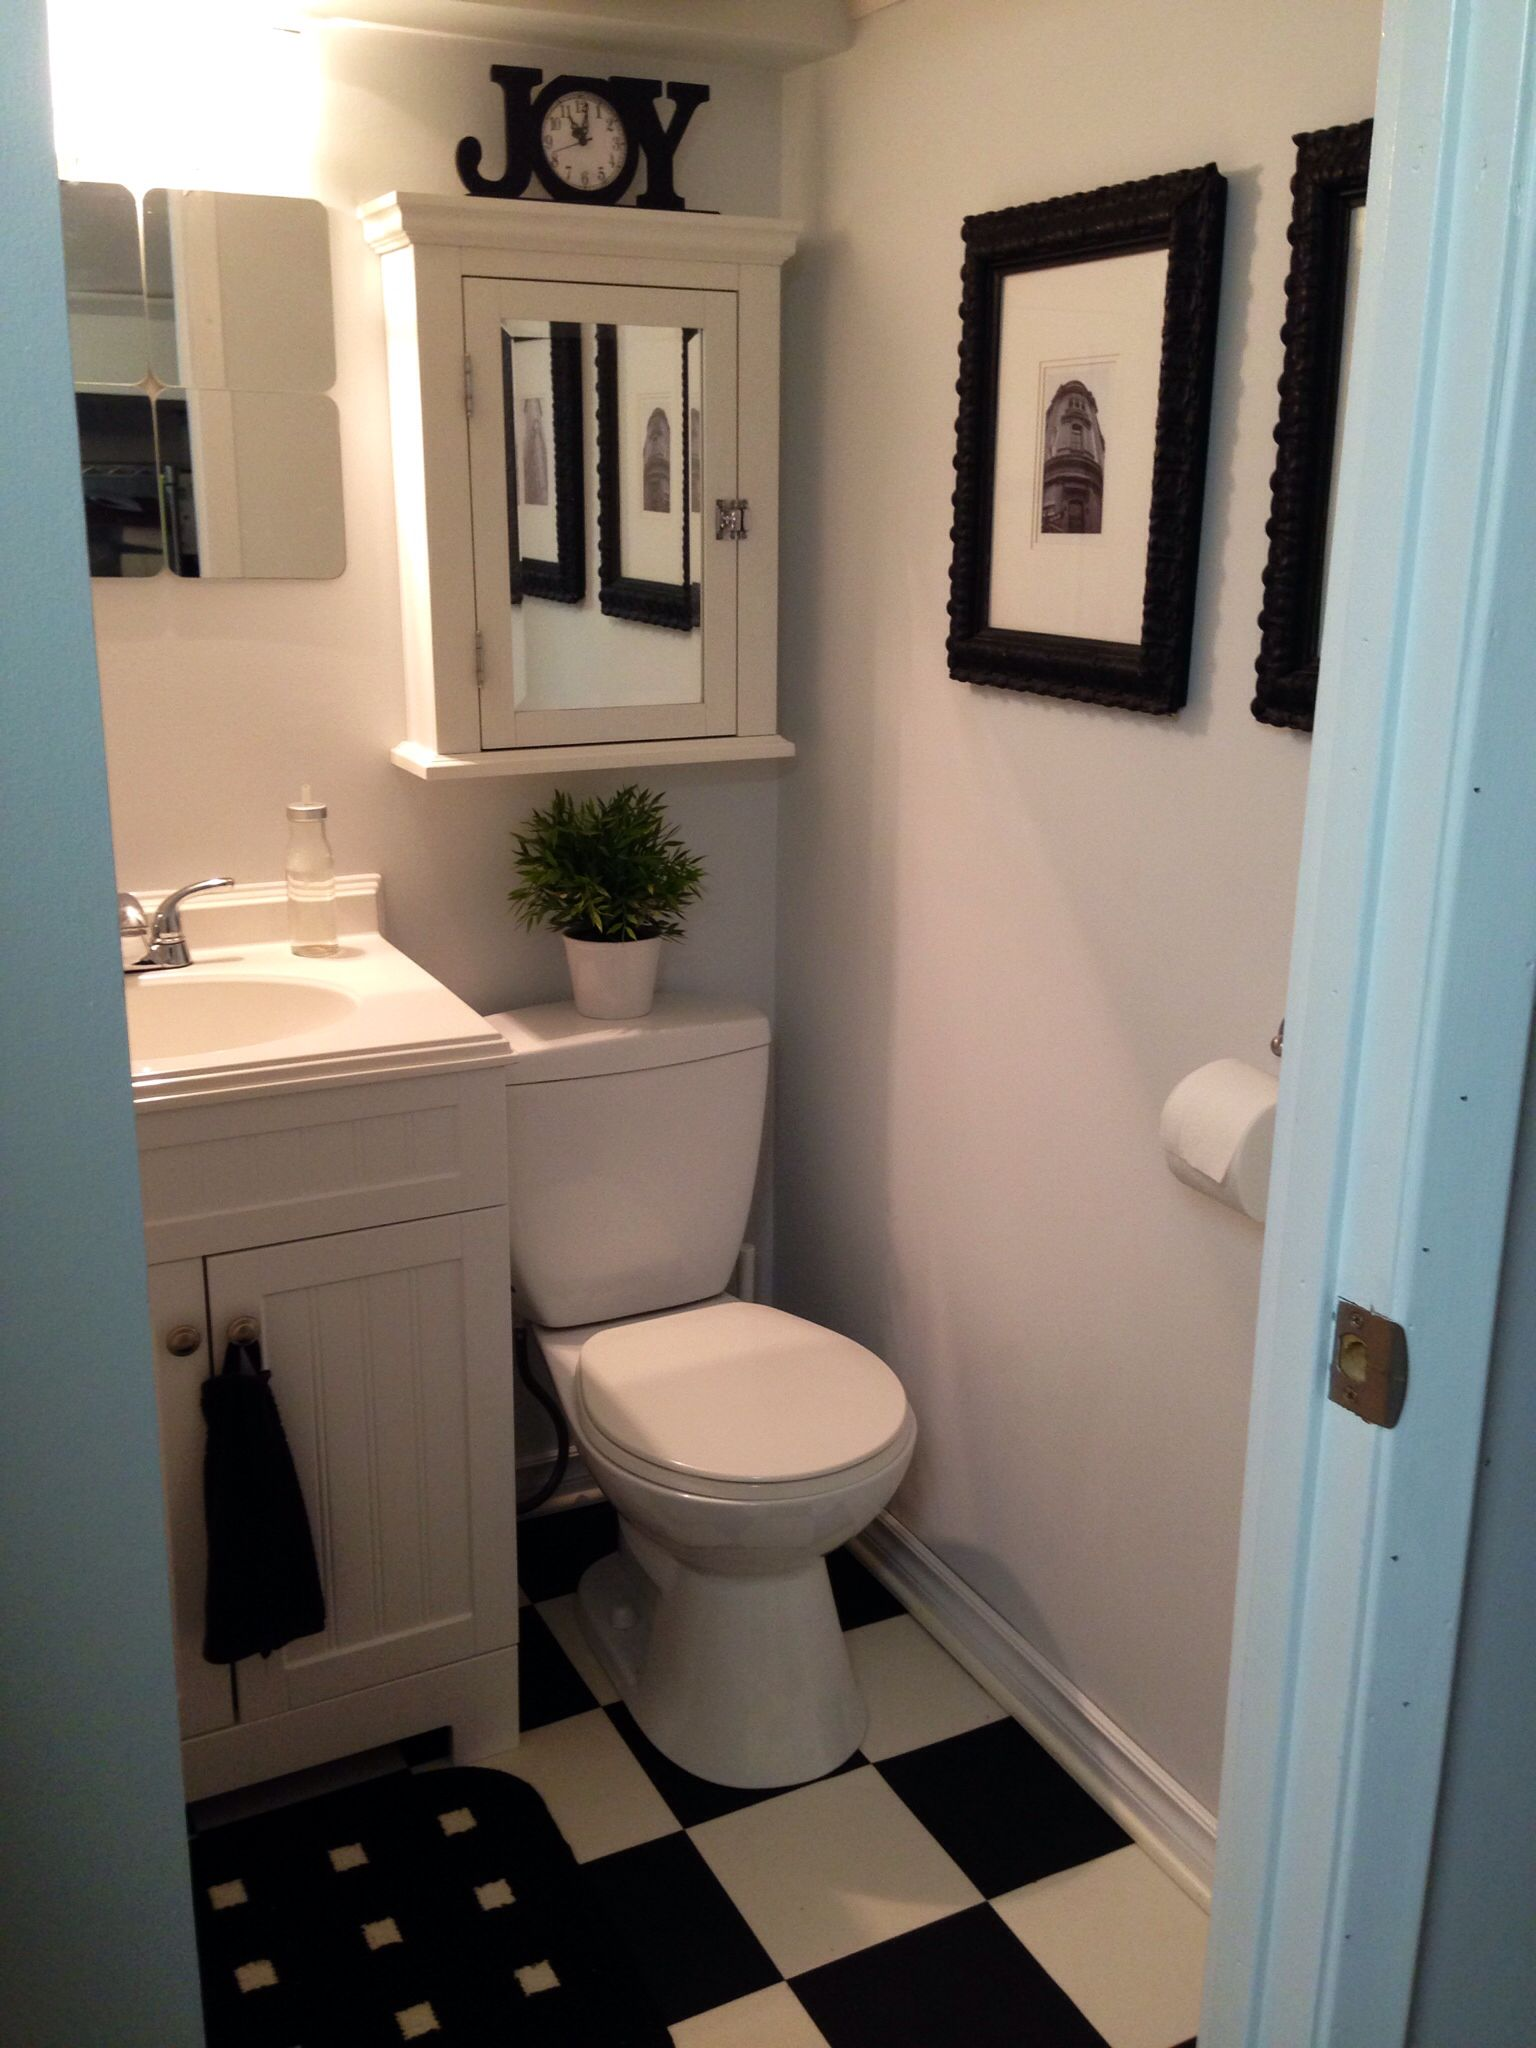 All new small bathroom ideas pinterest room decor for New small bathroom